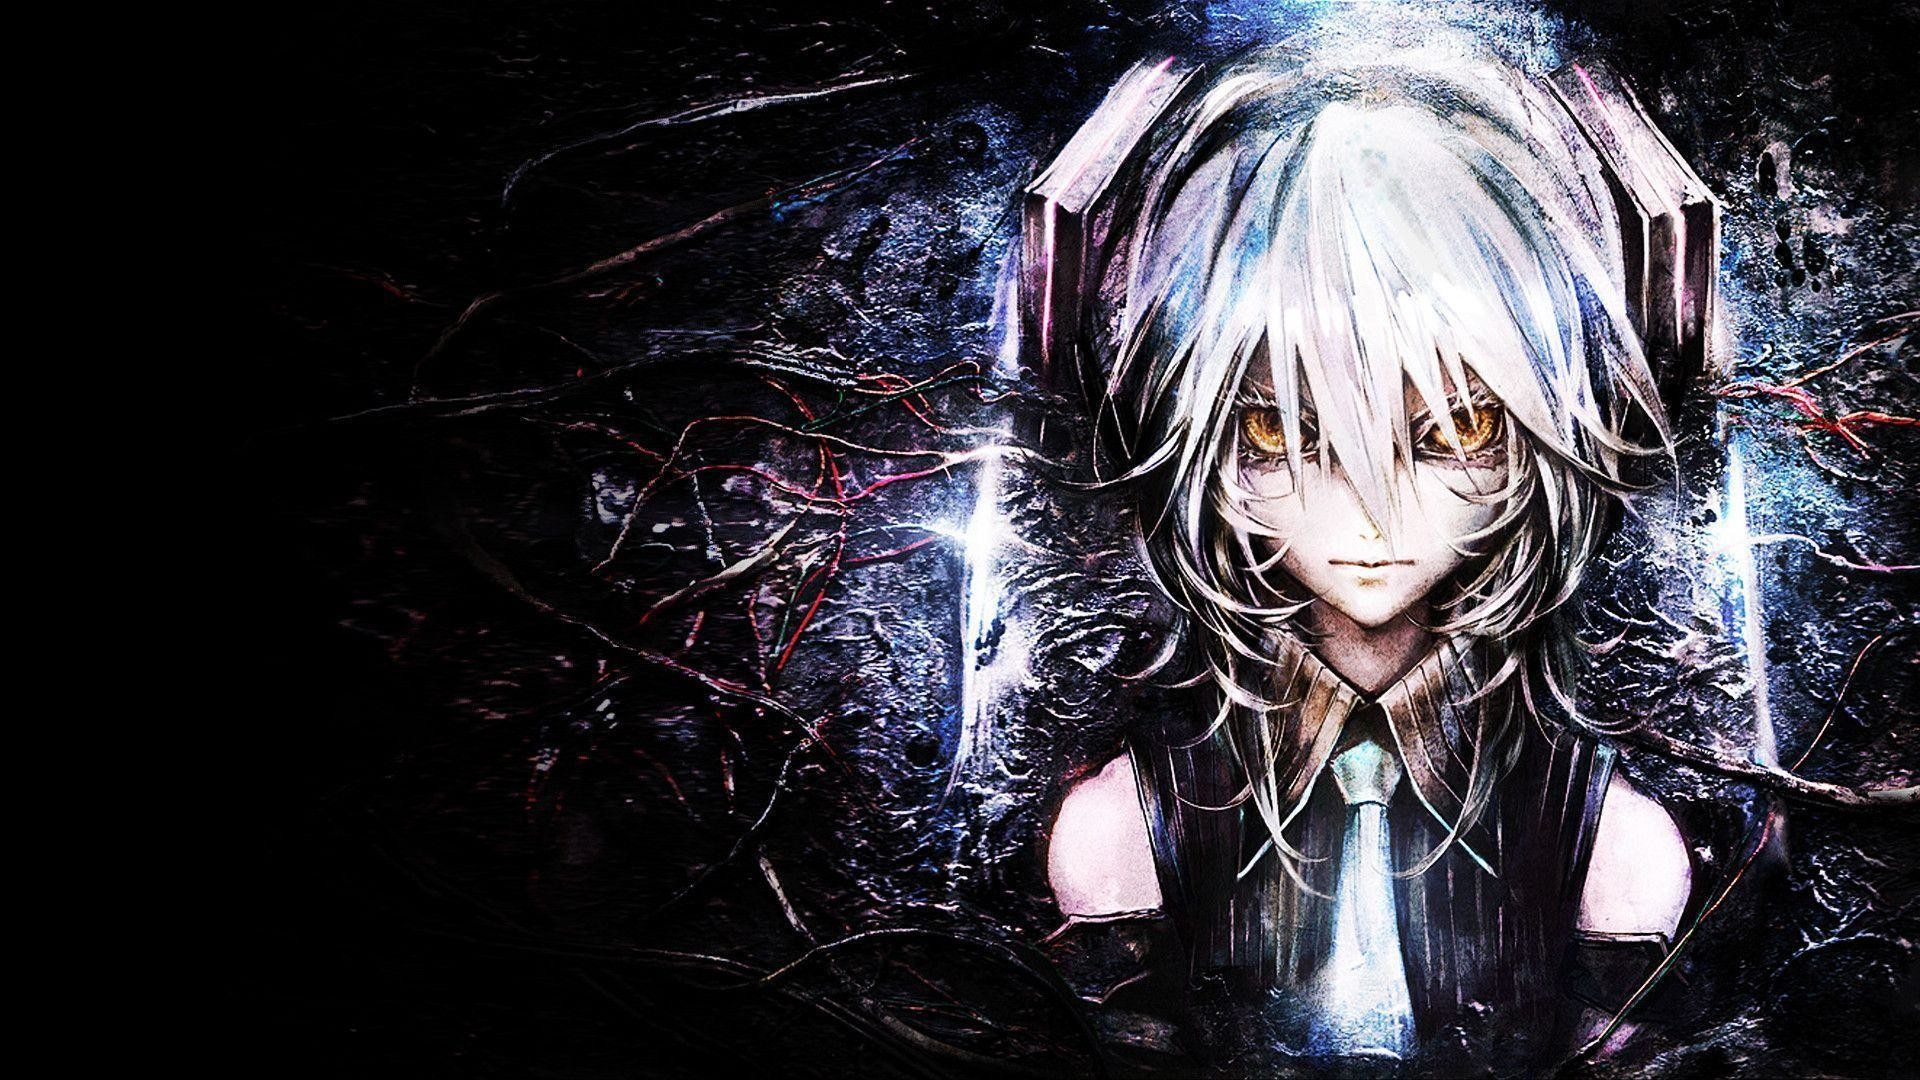 Hd Anime Wallpapers 1080p 89 Background Pictures